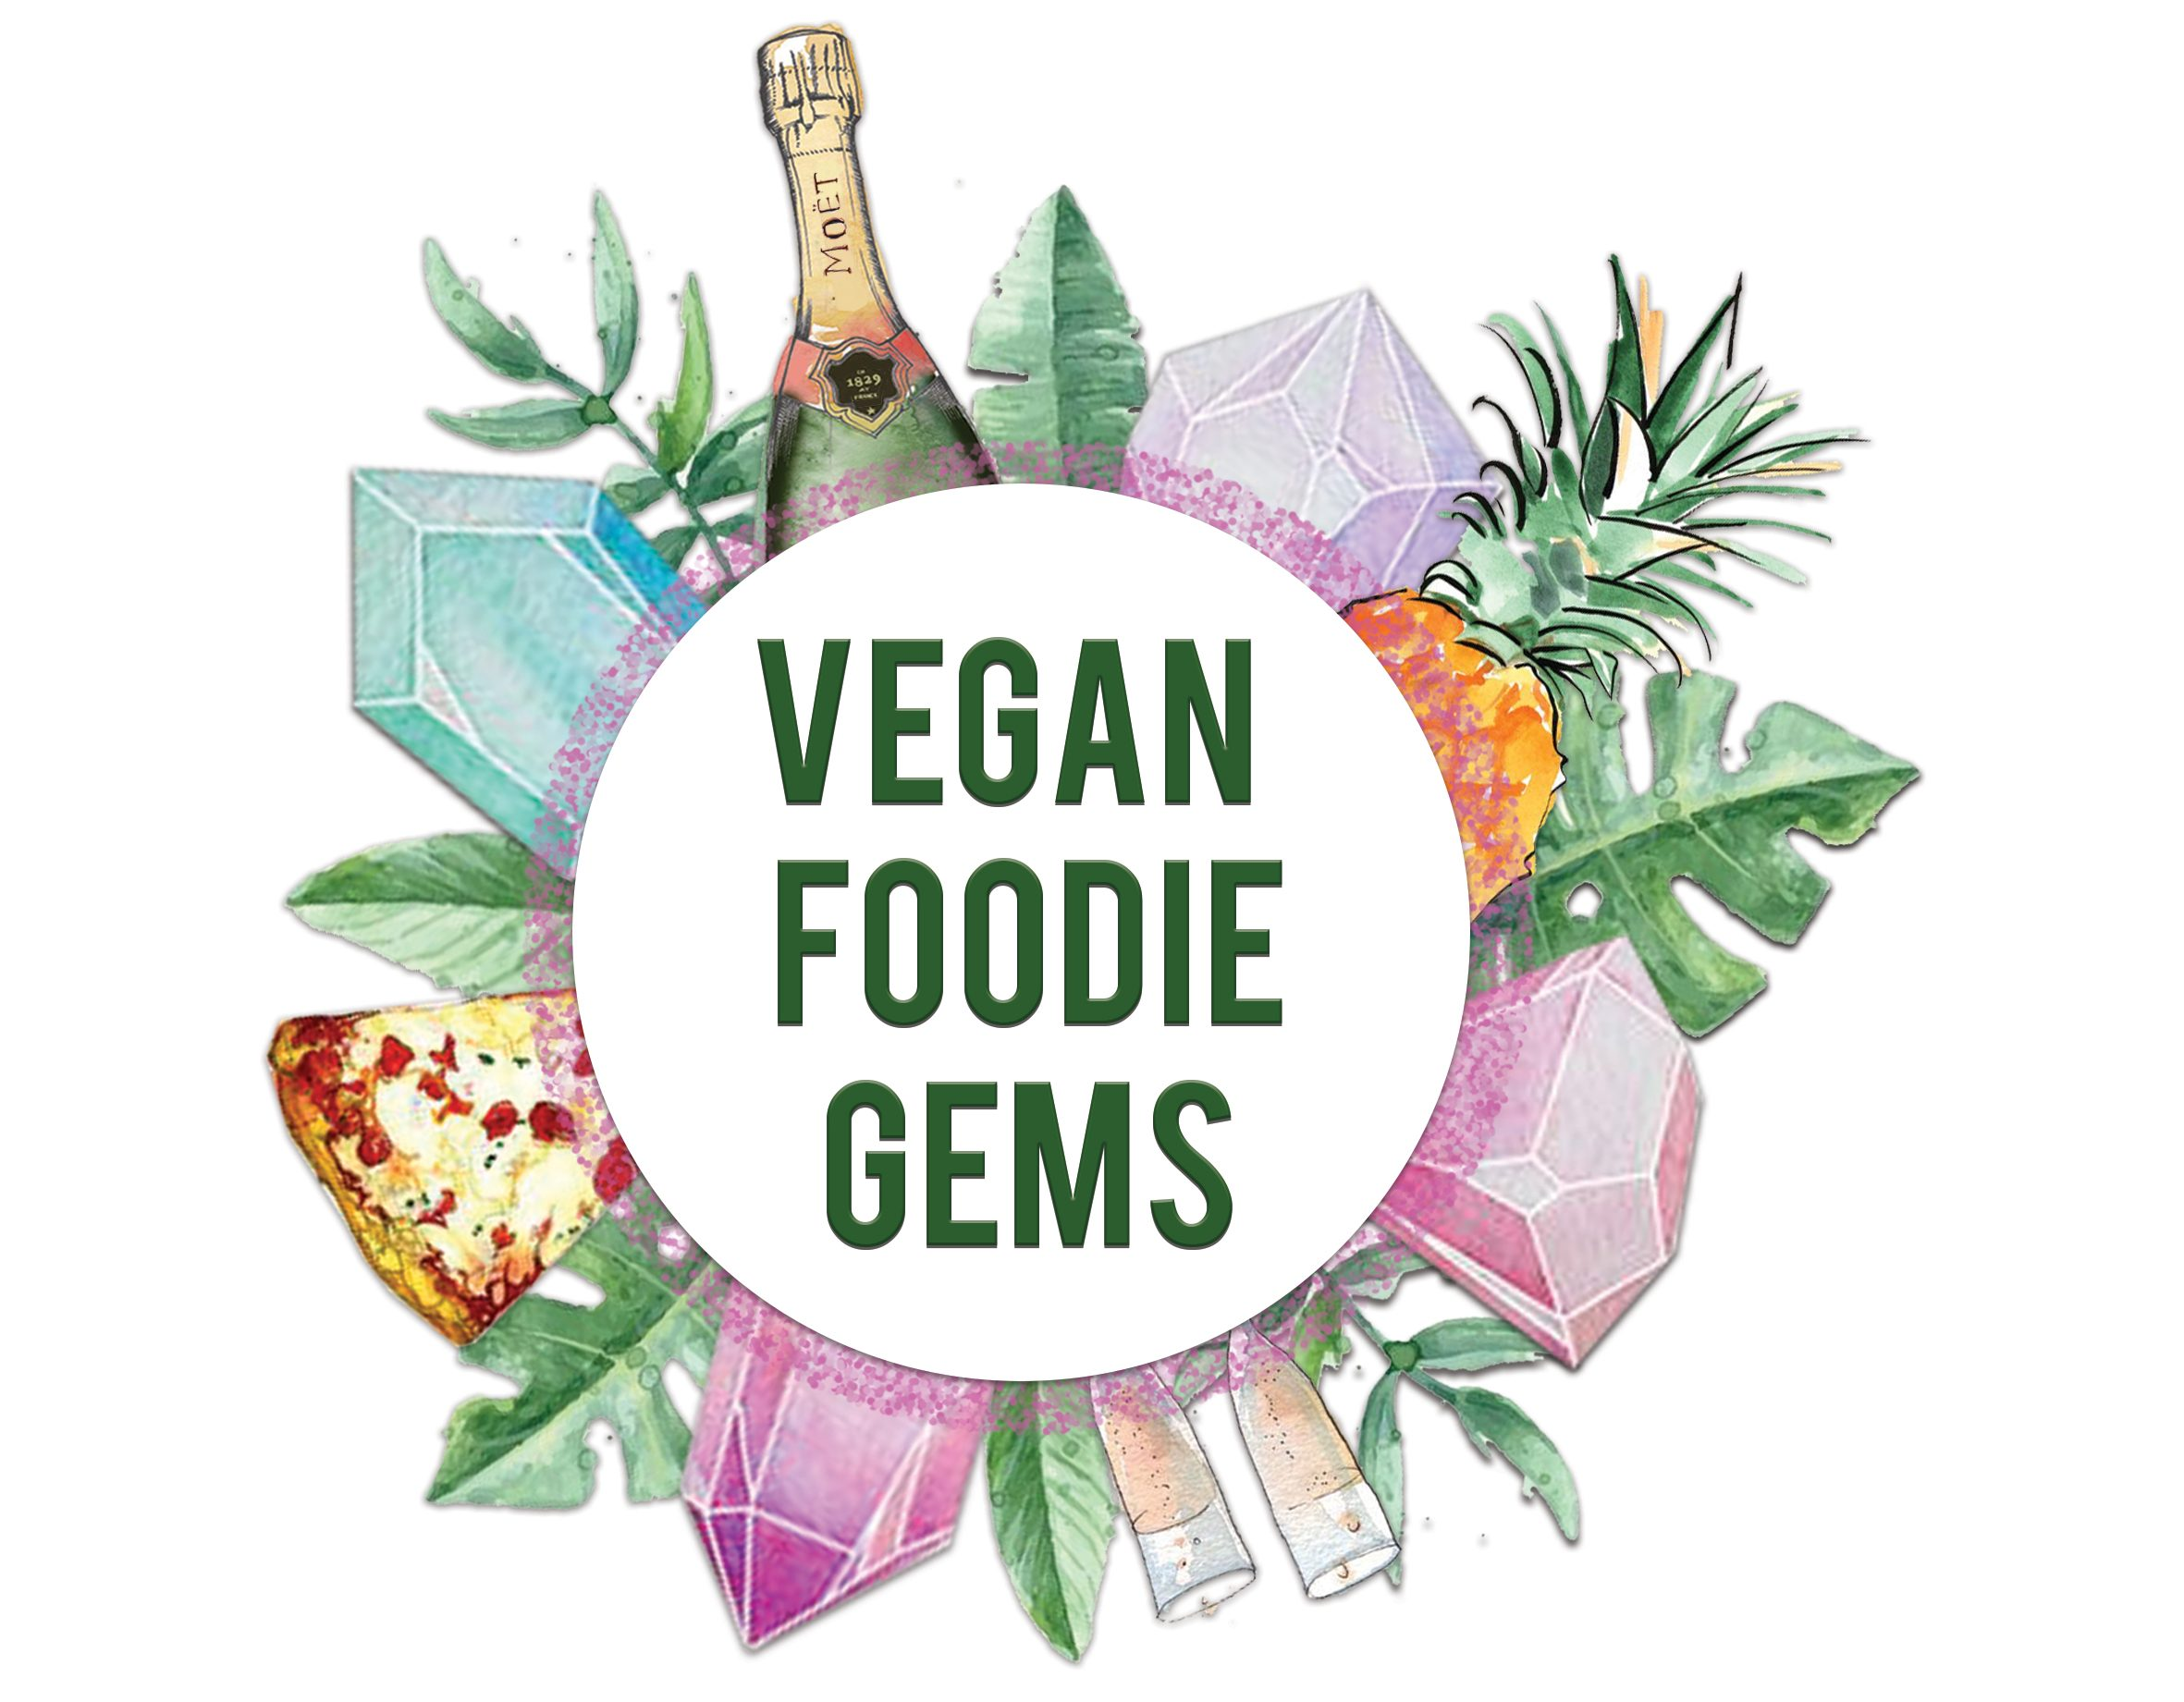 Vegan Foodie Gems